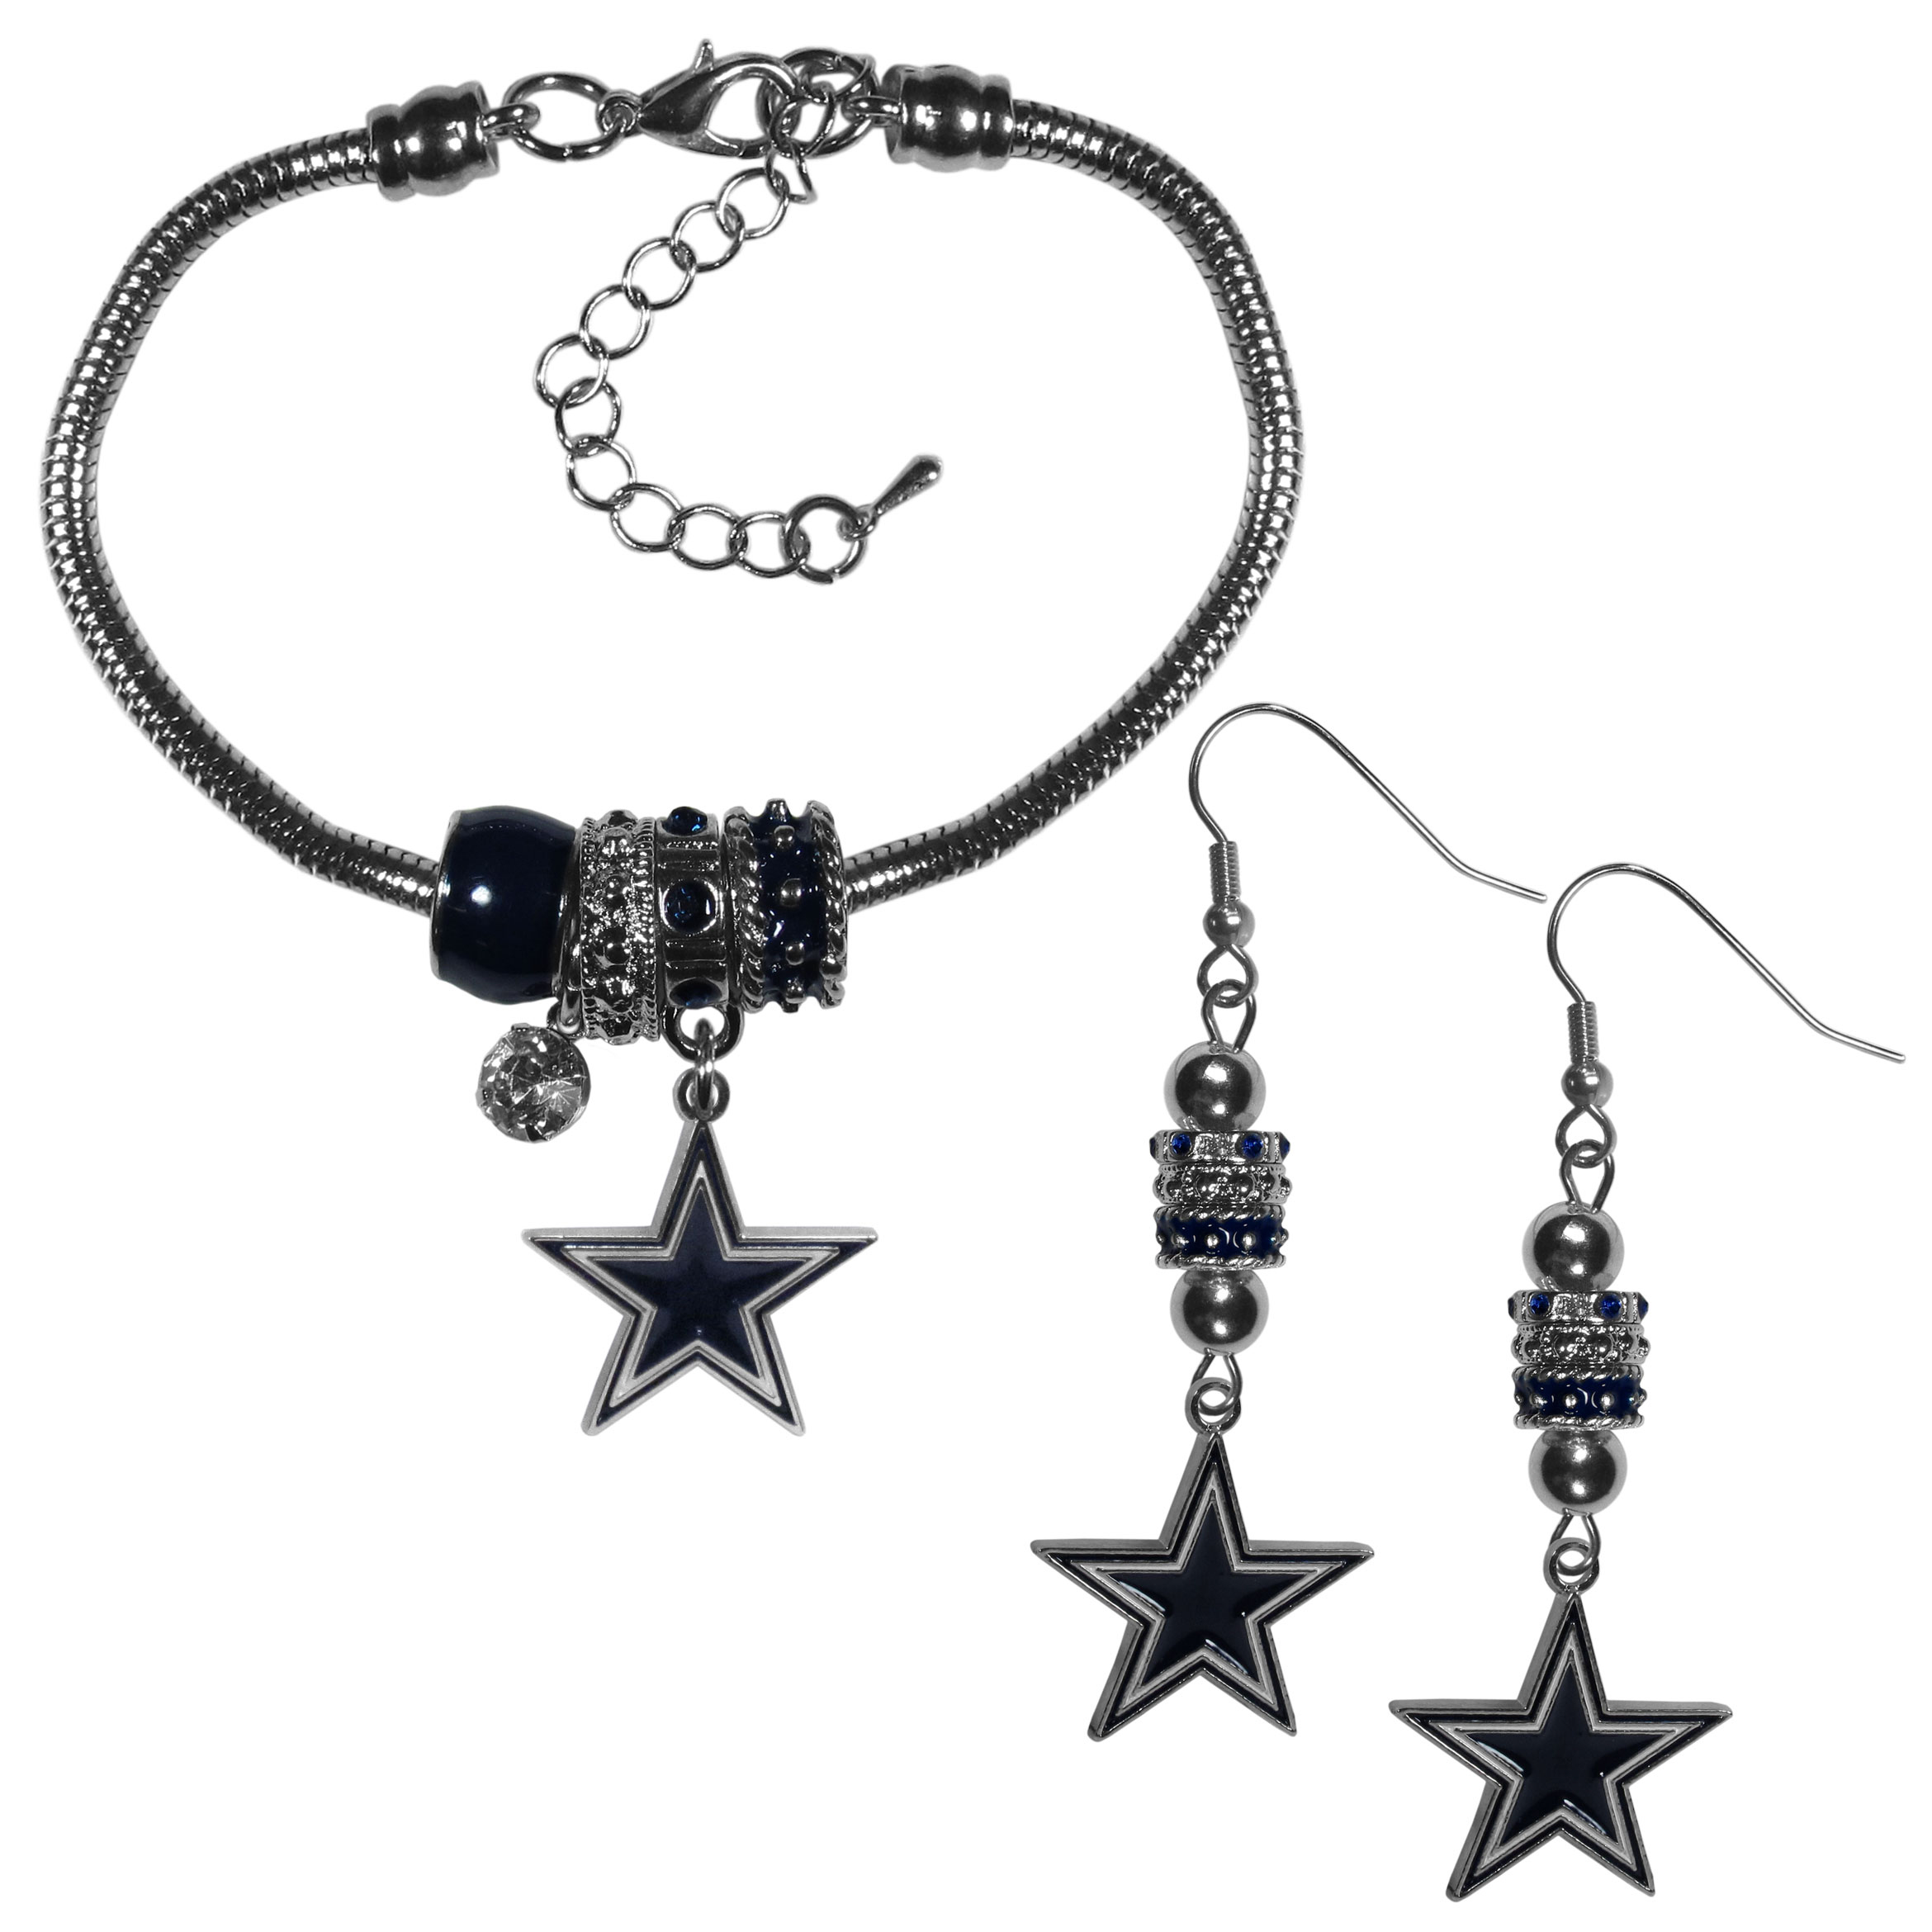 Dallas Cowboys Euro Bead Earrings and Bracelet Set - We combine the popular Euro bead style with your love of the Dallas Cowboys with this beautiful jewelry set that includes earrings and a matching bracelet. The stylish earrings feature hypoallergenic, nickel free fishhook posts and 3 team colored Euro beads and a metal team charm. The matching snake chain bracelet is 7.5 inches long with a 2 inch extender and 4 Euro beads with a rhinestone charm and team charm.